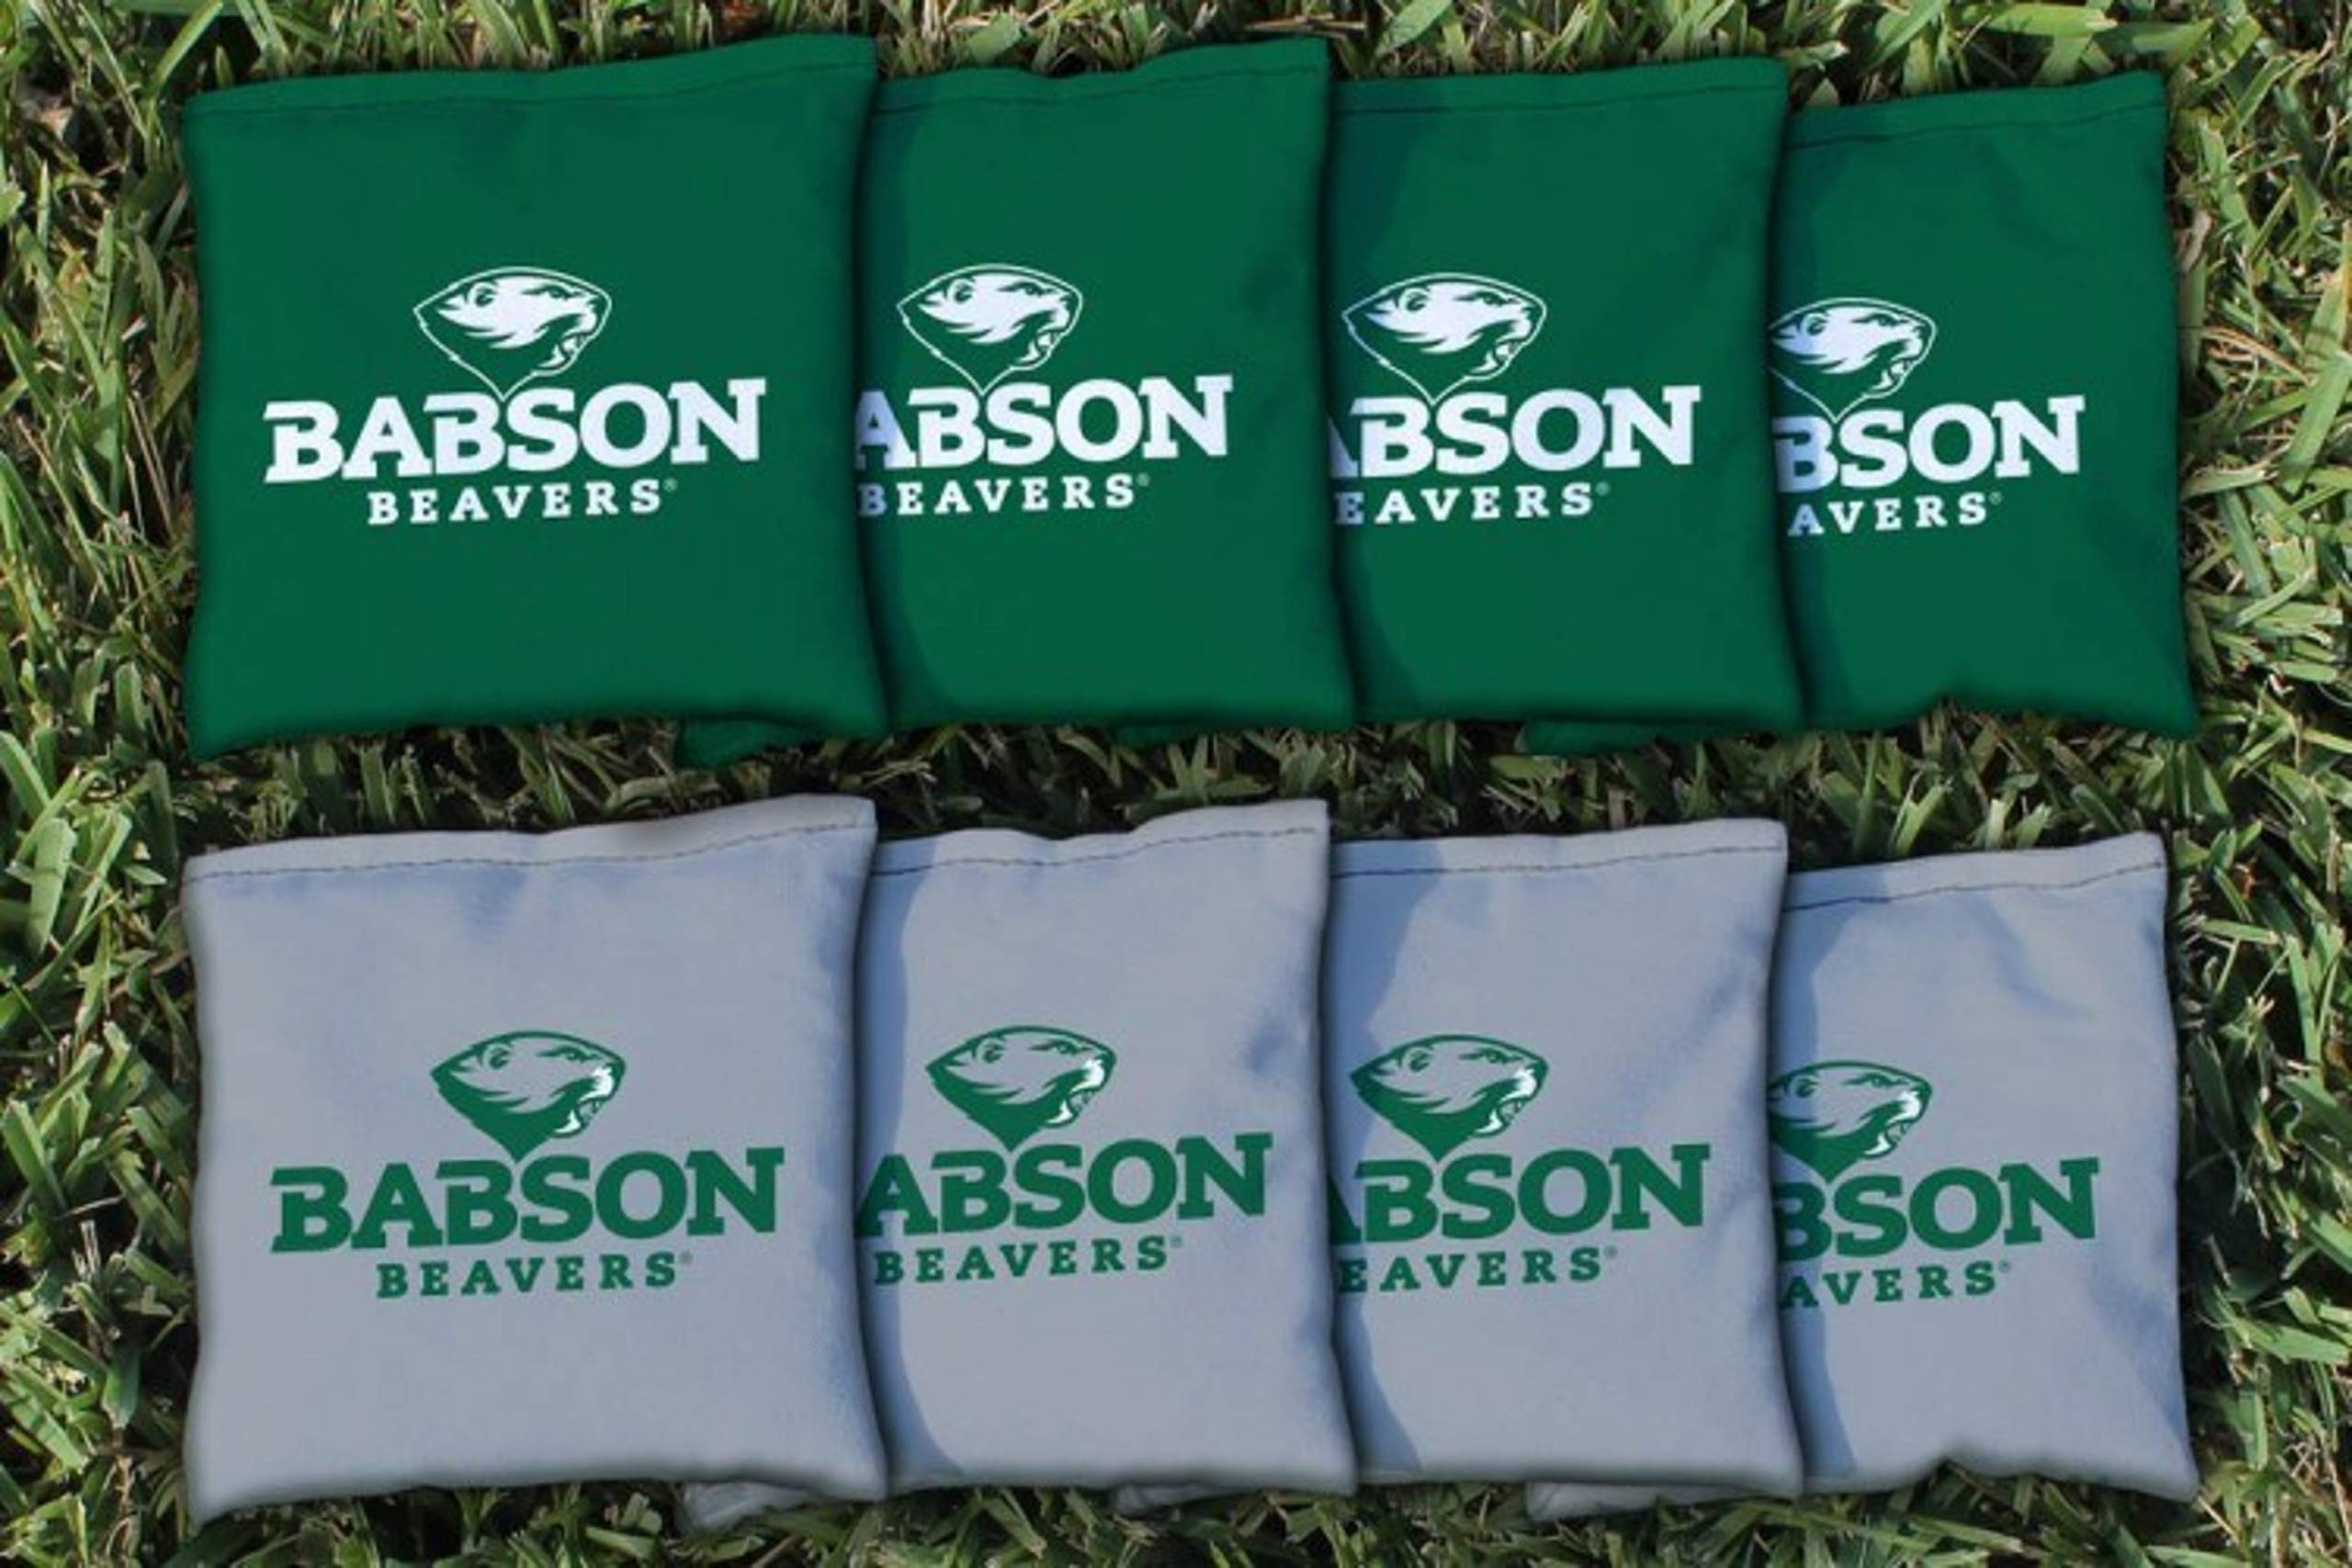 Victory Tailgate NCAA Regulation All Weather Cornhole Game Bag Set - 8 Bags Included - Babson Beavers by Victory Tailgate